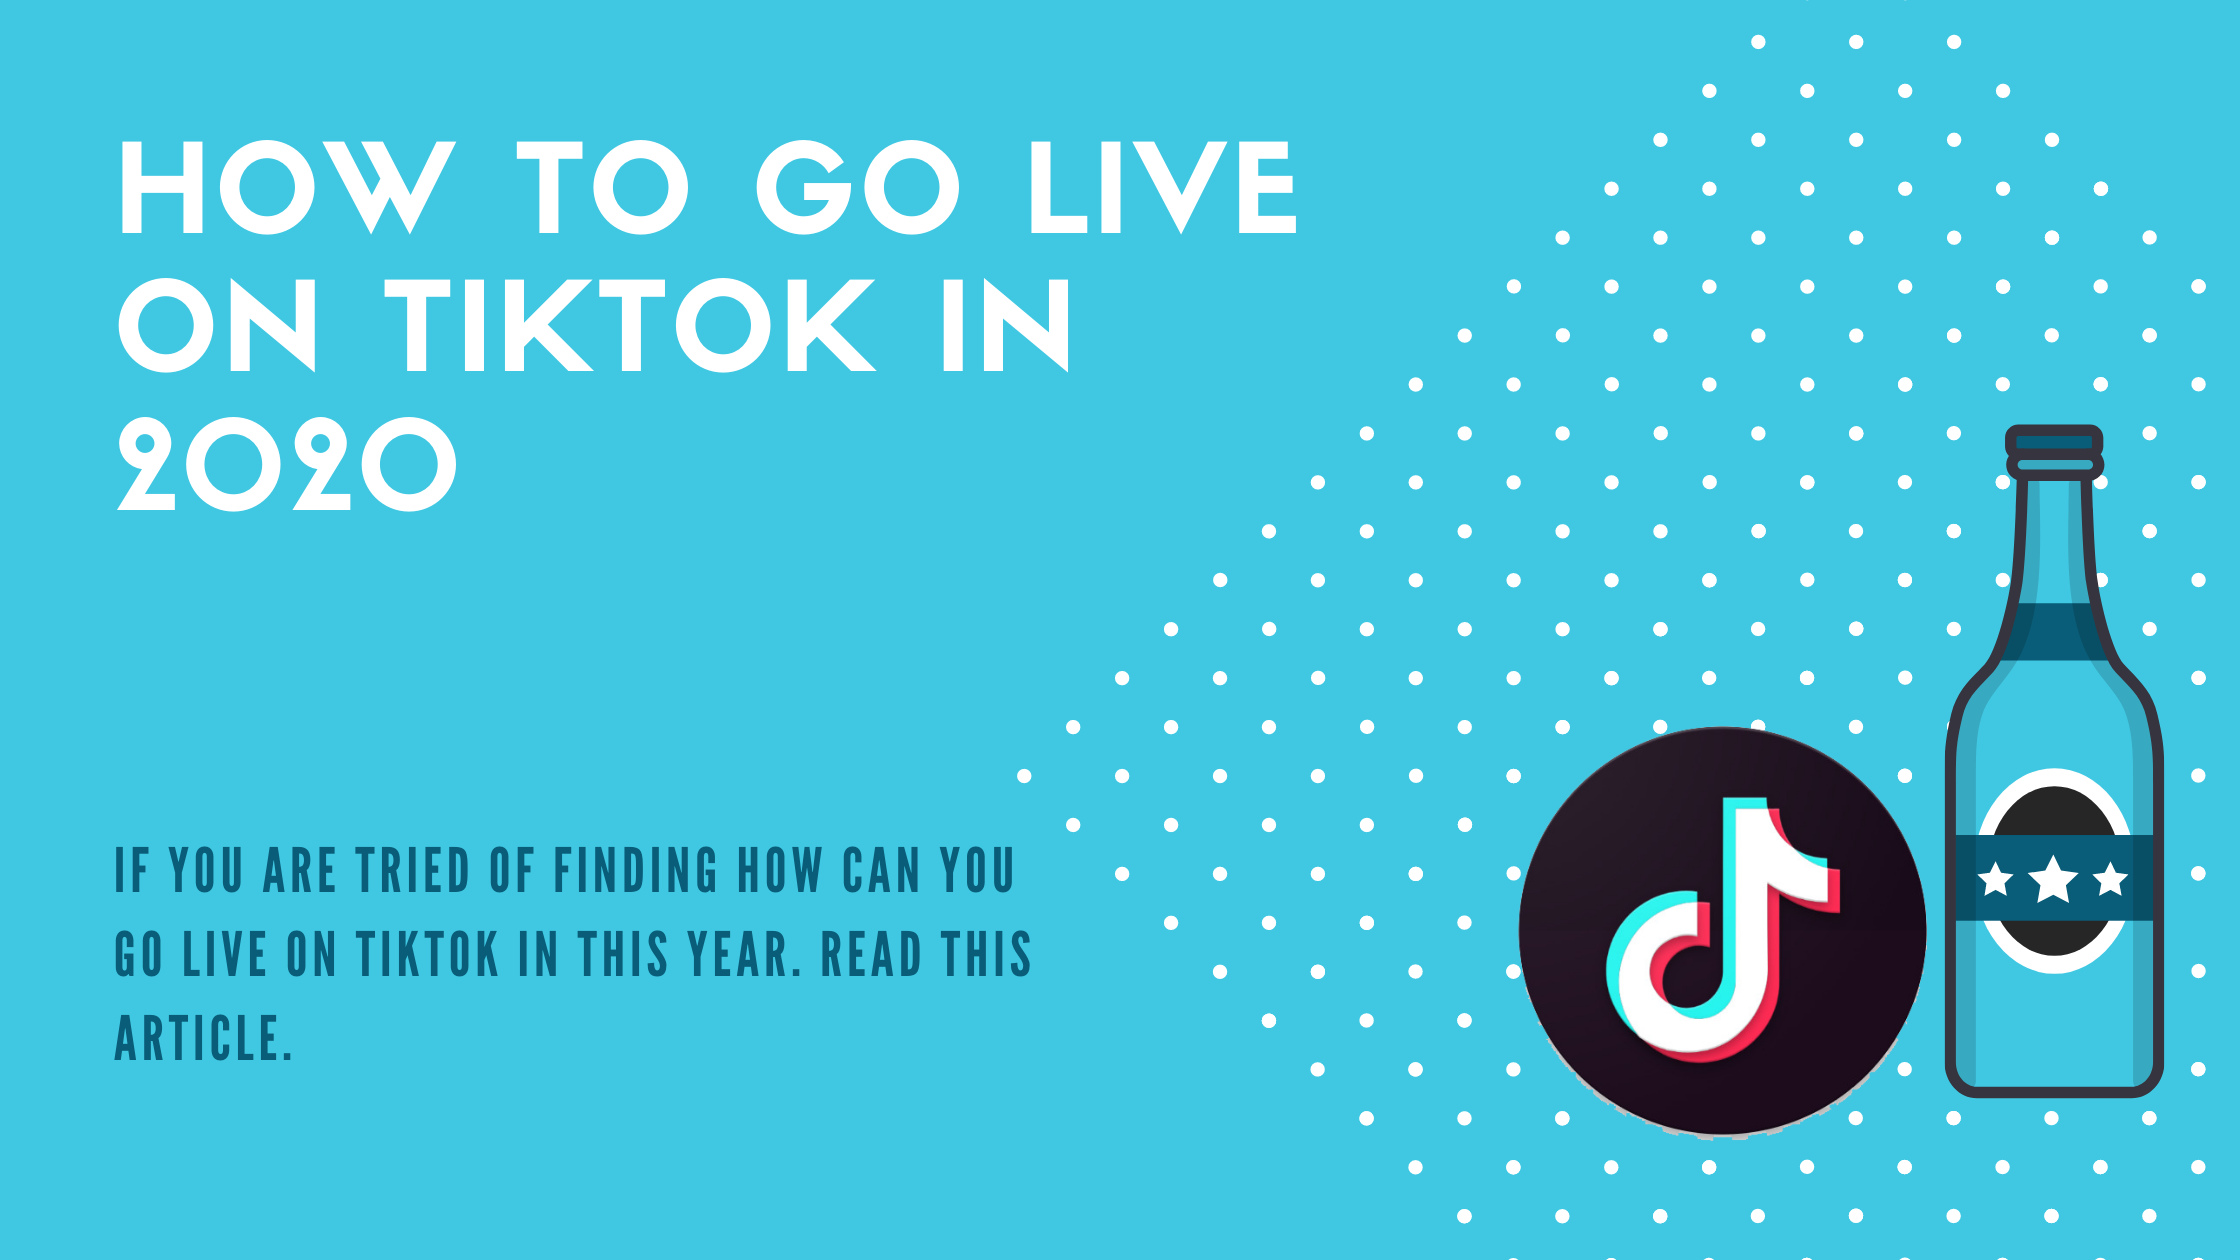 how to go live on tiktok